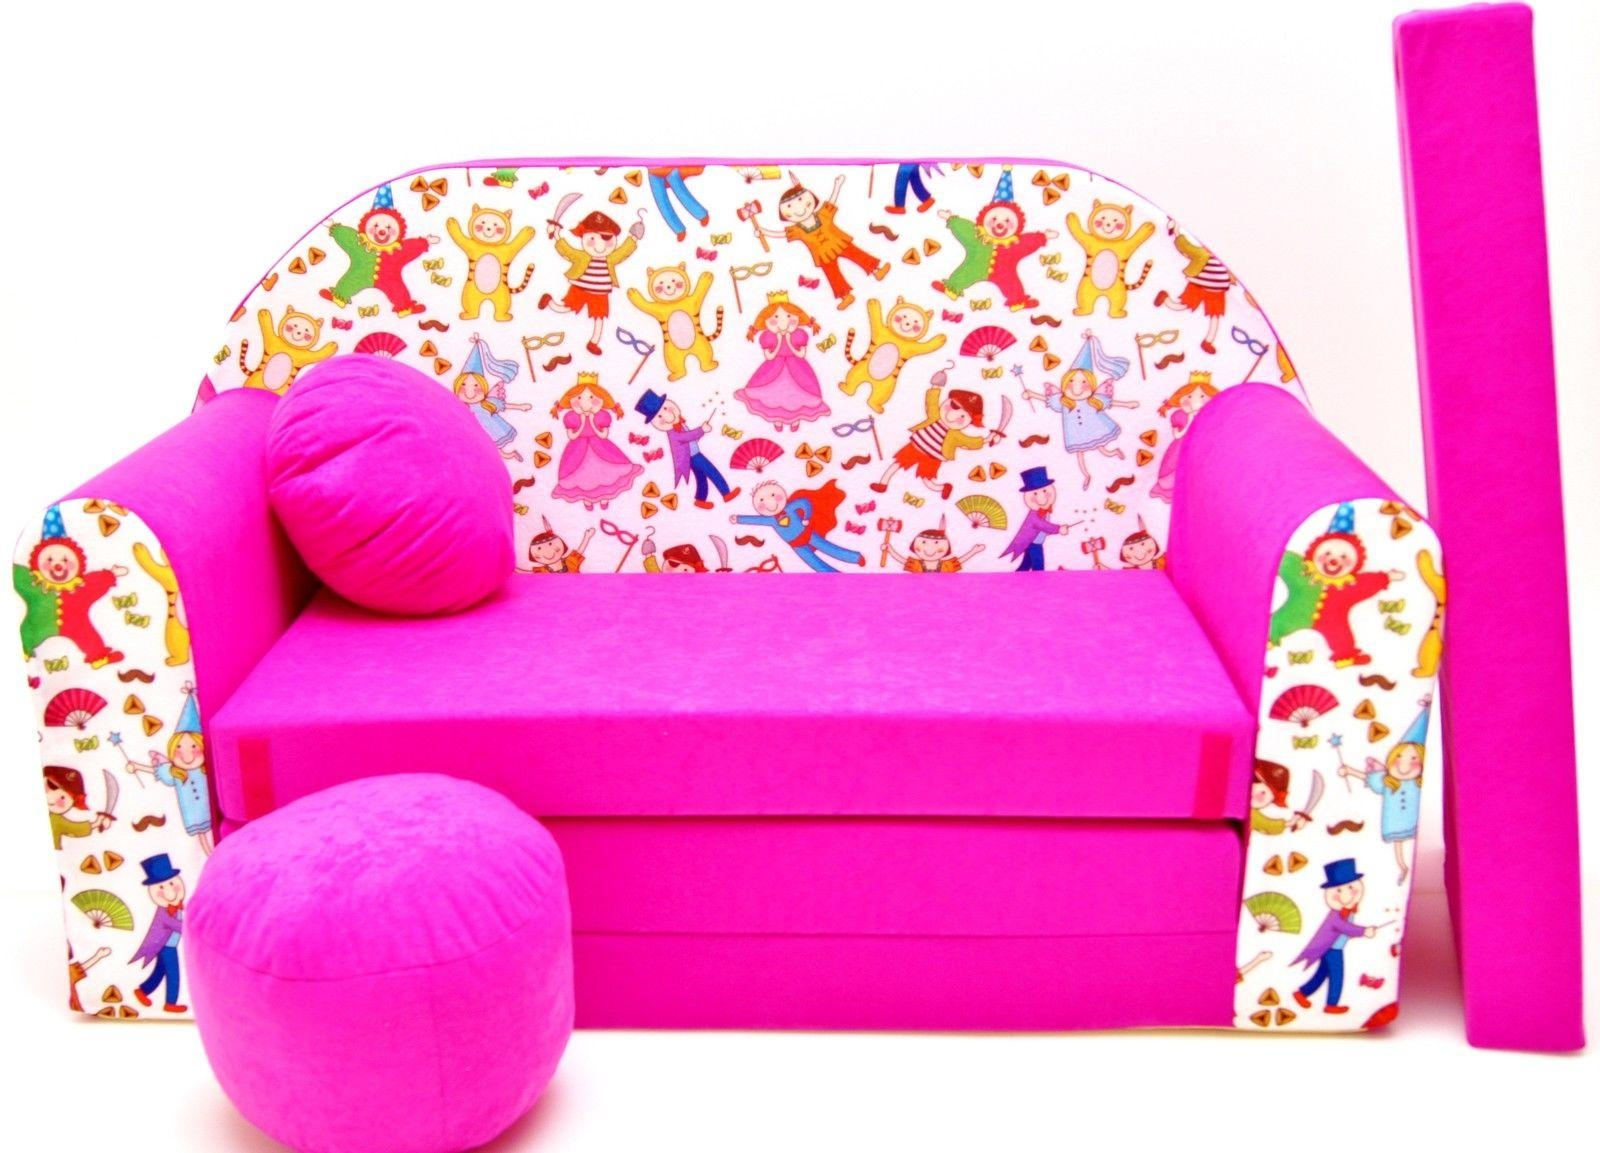 Childrens Sofa Bed, Fold Out Sofa Bed + Free Pillow And Pouffe Intended For Footstool Pouffe Sofa Folding Bed (View 6 of 20)